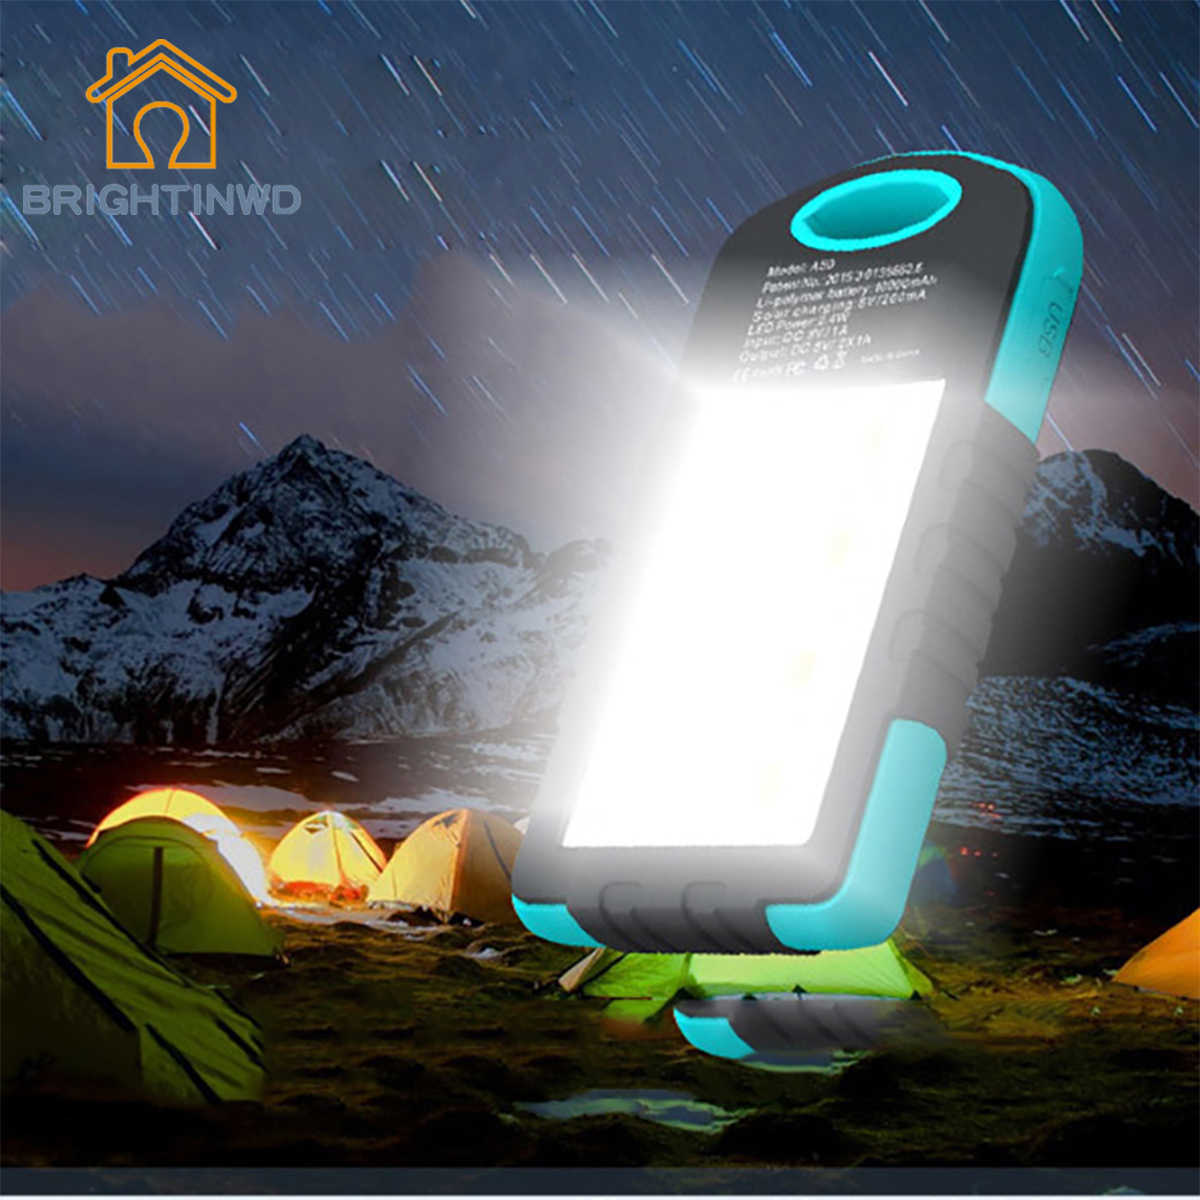 LED Solar Power Camping Lamp Outdoor LED Flashlight 3000mAh Solar Power Bank For Phone Portable Lanterns BRIGHTINWD